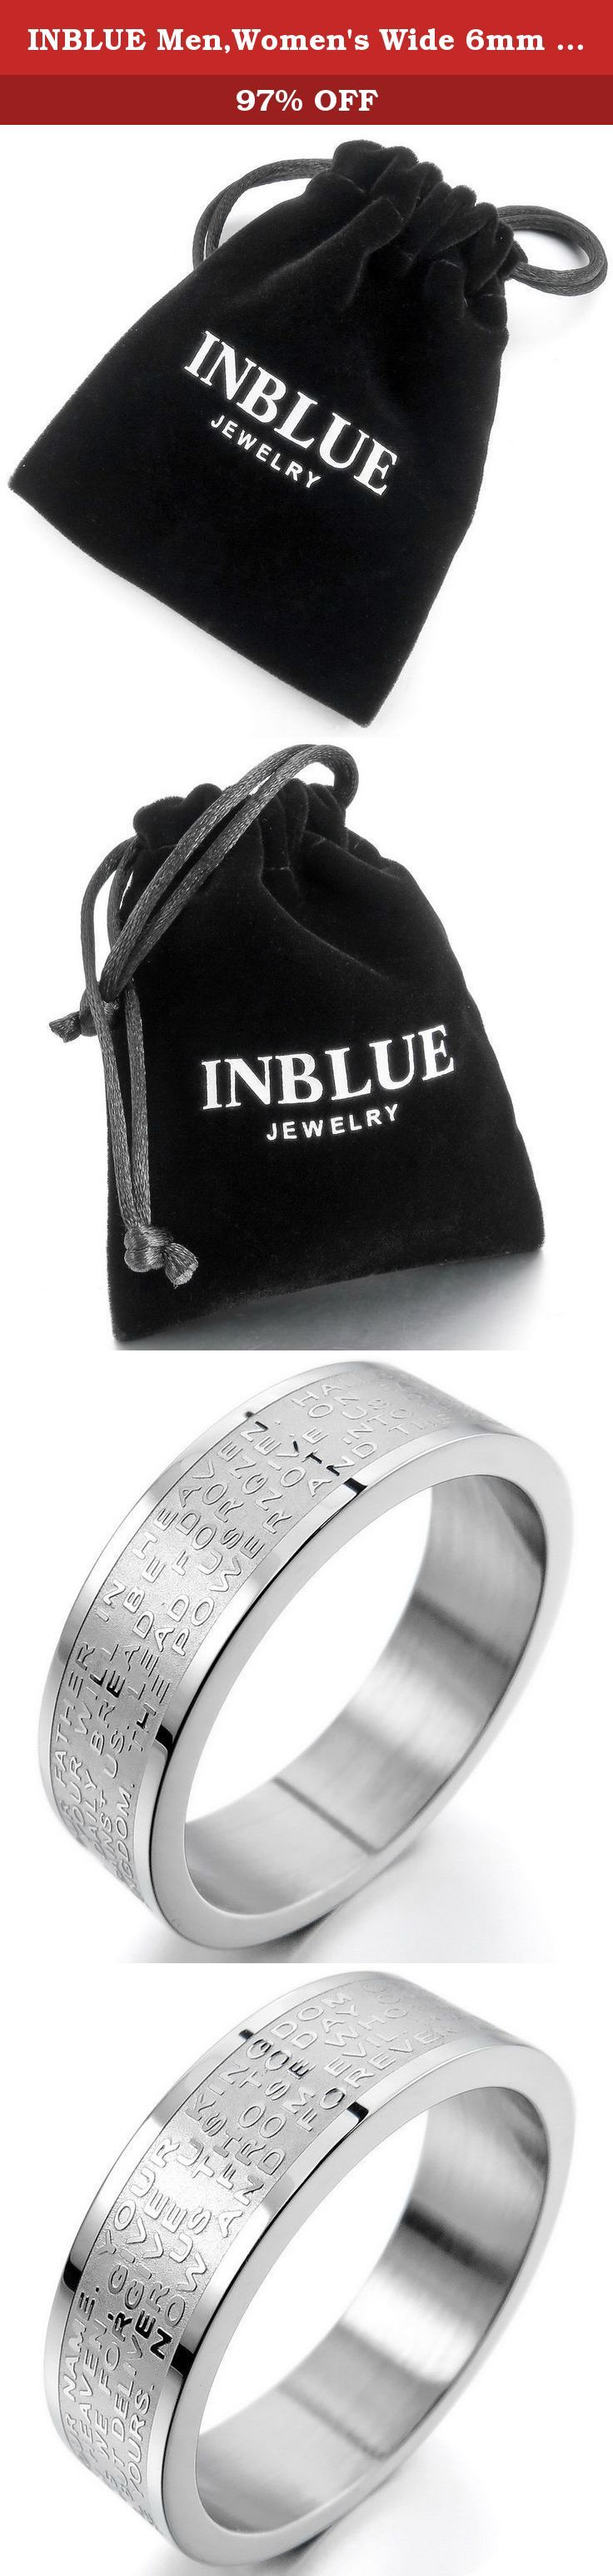 INBLUE Men,Women's Wide 6mm Stainless Steel Ring Band Silver Tone English Bible Lords Prayer Cross Size5. INBLUE - High quality Jewelry Discover the INBLUE Collection of jewelry. The selection of high-quality jewelry featured in the INBLUE Collection offers Great values at affordable Price, they mainly made of high quality Stainless Steel, Tungsten, Silver and Leather. Find a special gift for a loved one or a beautiful piece that complements your personal style with jewelry from the…